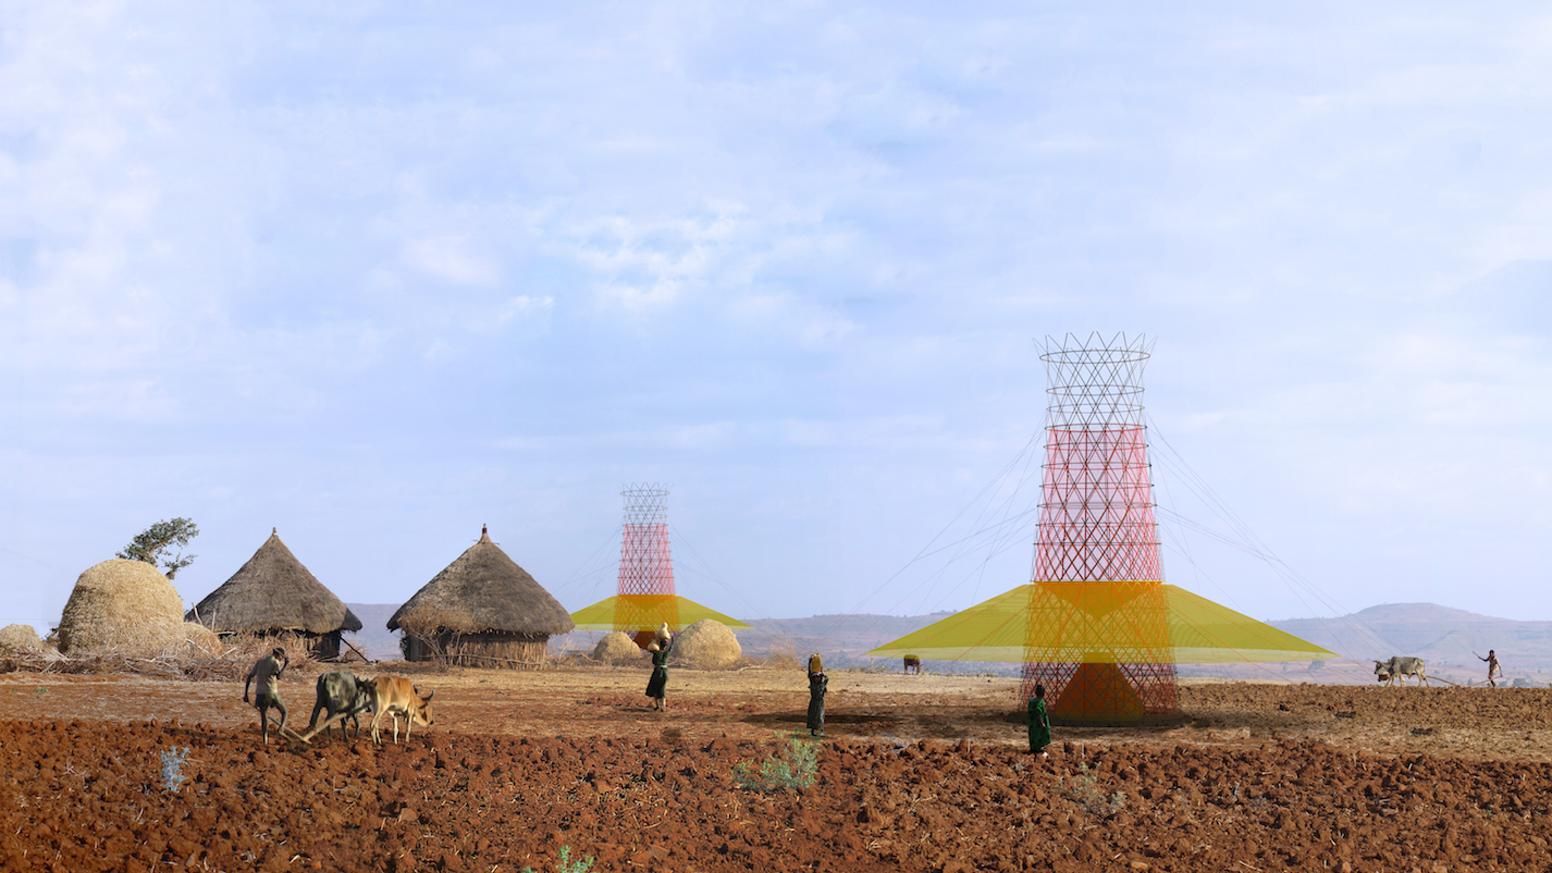 Warka Water captures potable water from the air by collecting rain, harvesting fog and dew for rural communities in Ethiopia.